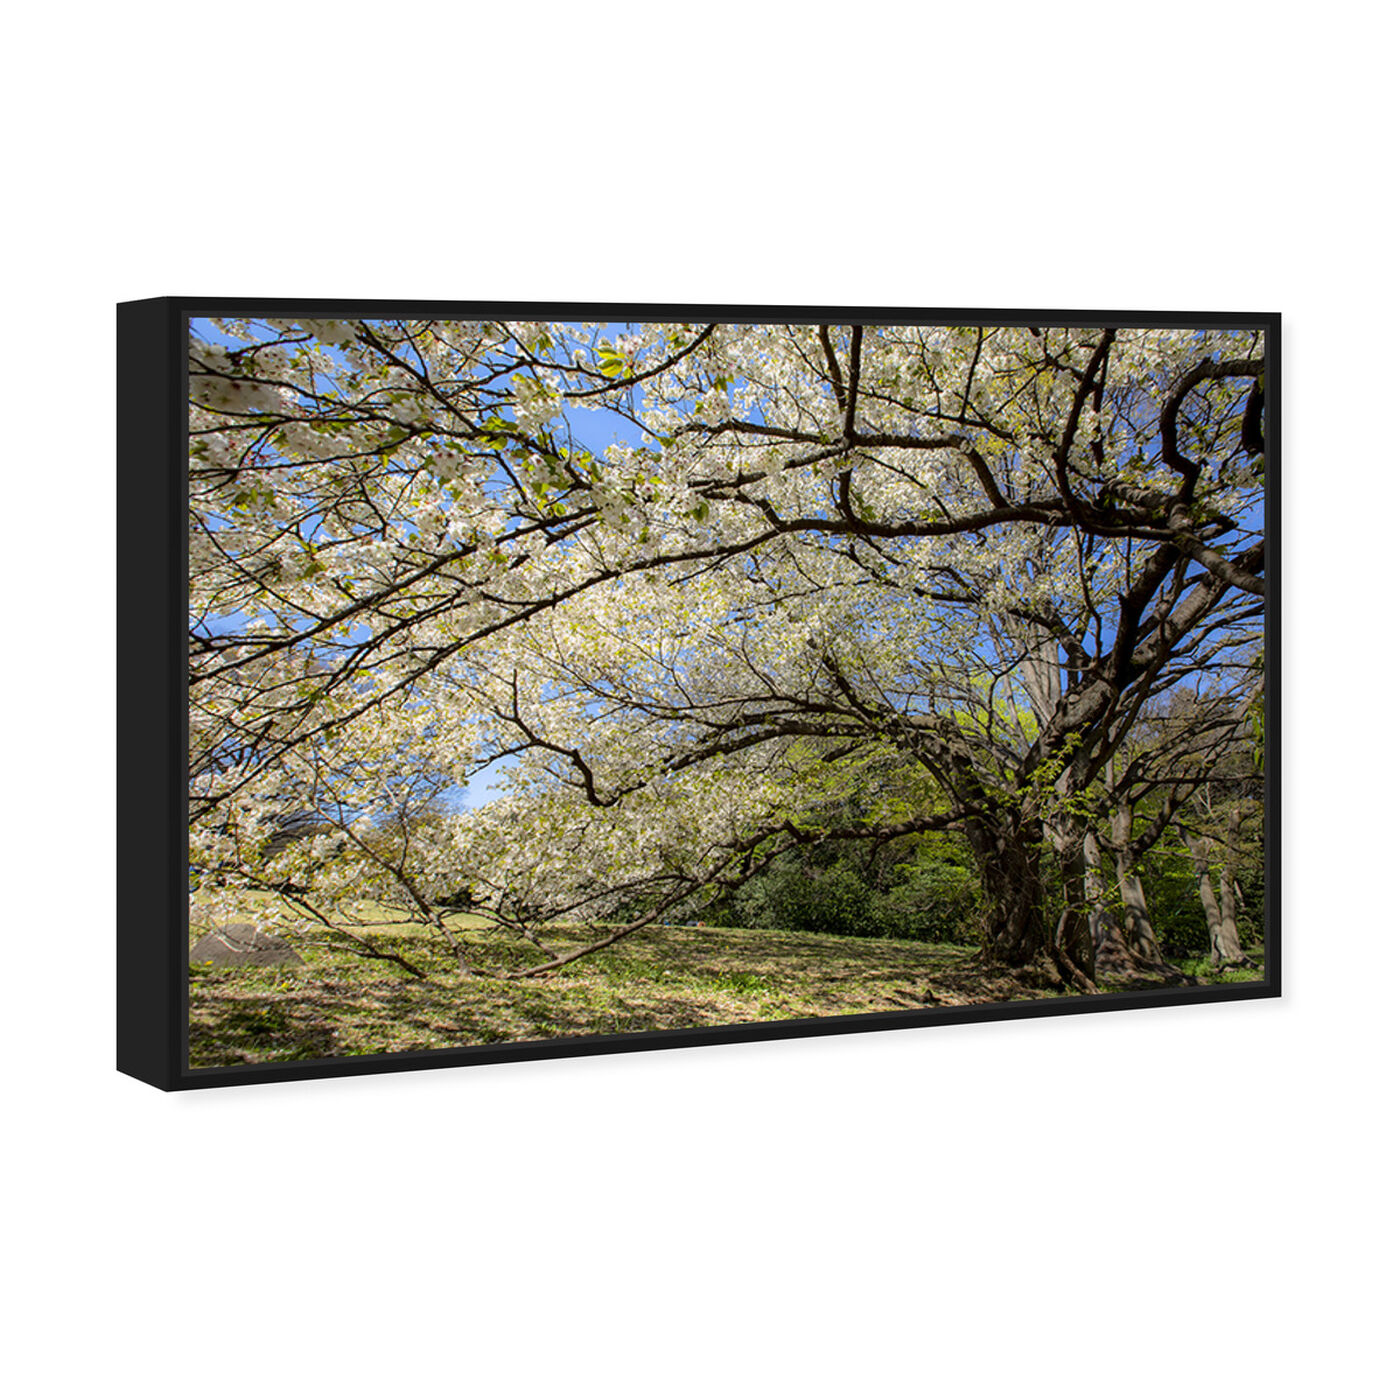 Angled view of Curro Cardenal - Under the Tree featuring floral and botanical and trees art.